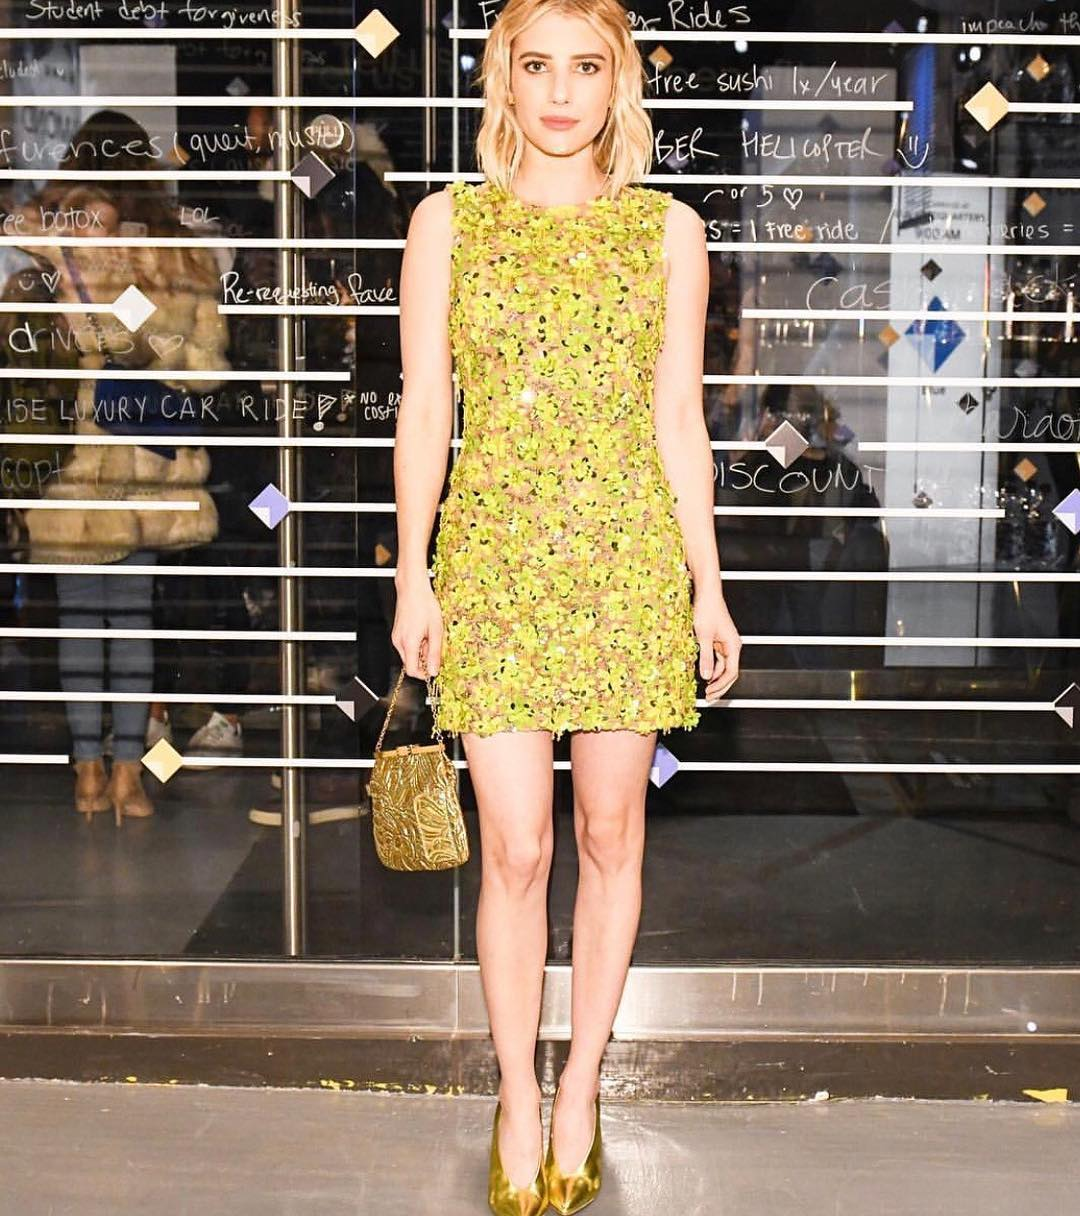 Emma Roberts Wearing Michael Kors Yellow Dress 2020 Stylefavourite Com